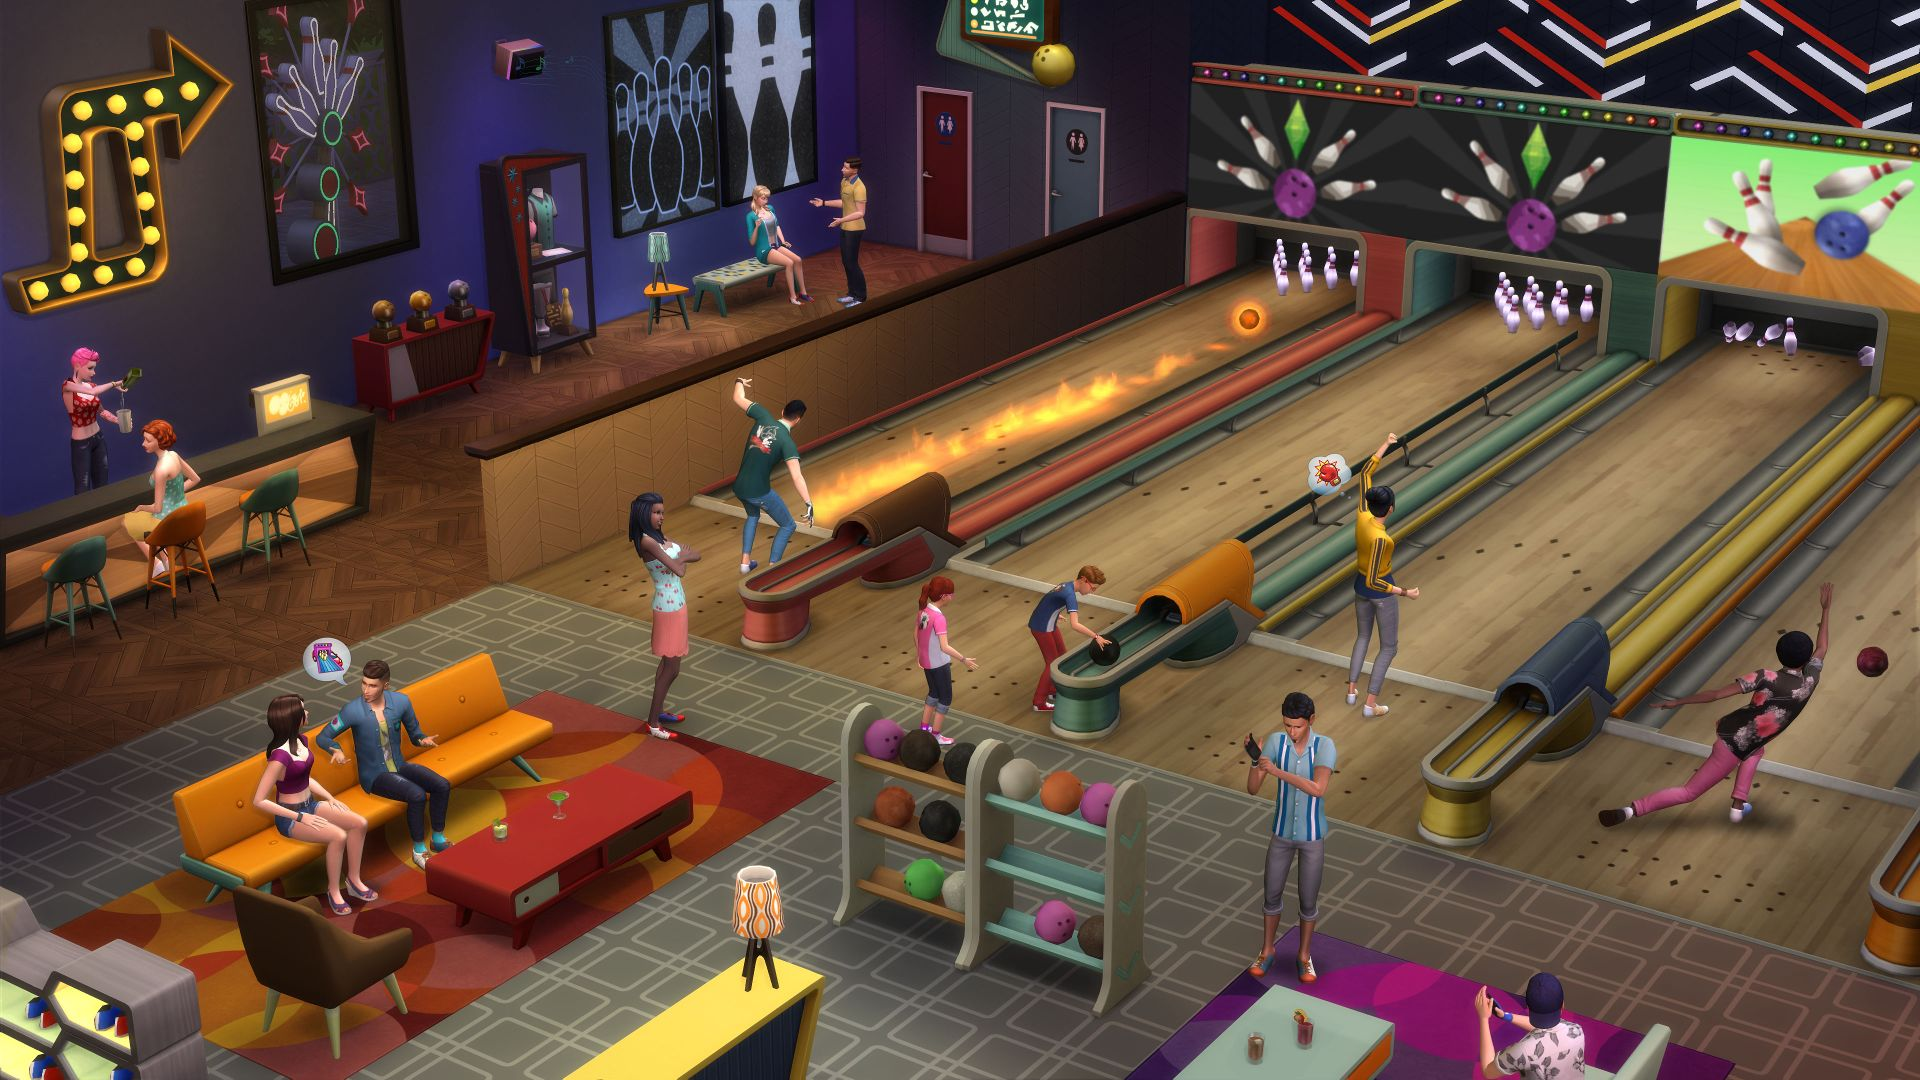 The Sims 4 Bowling Night Features